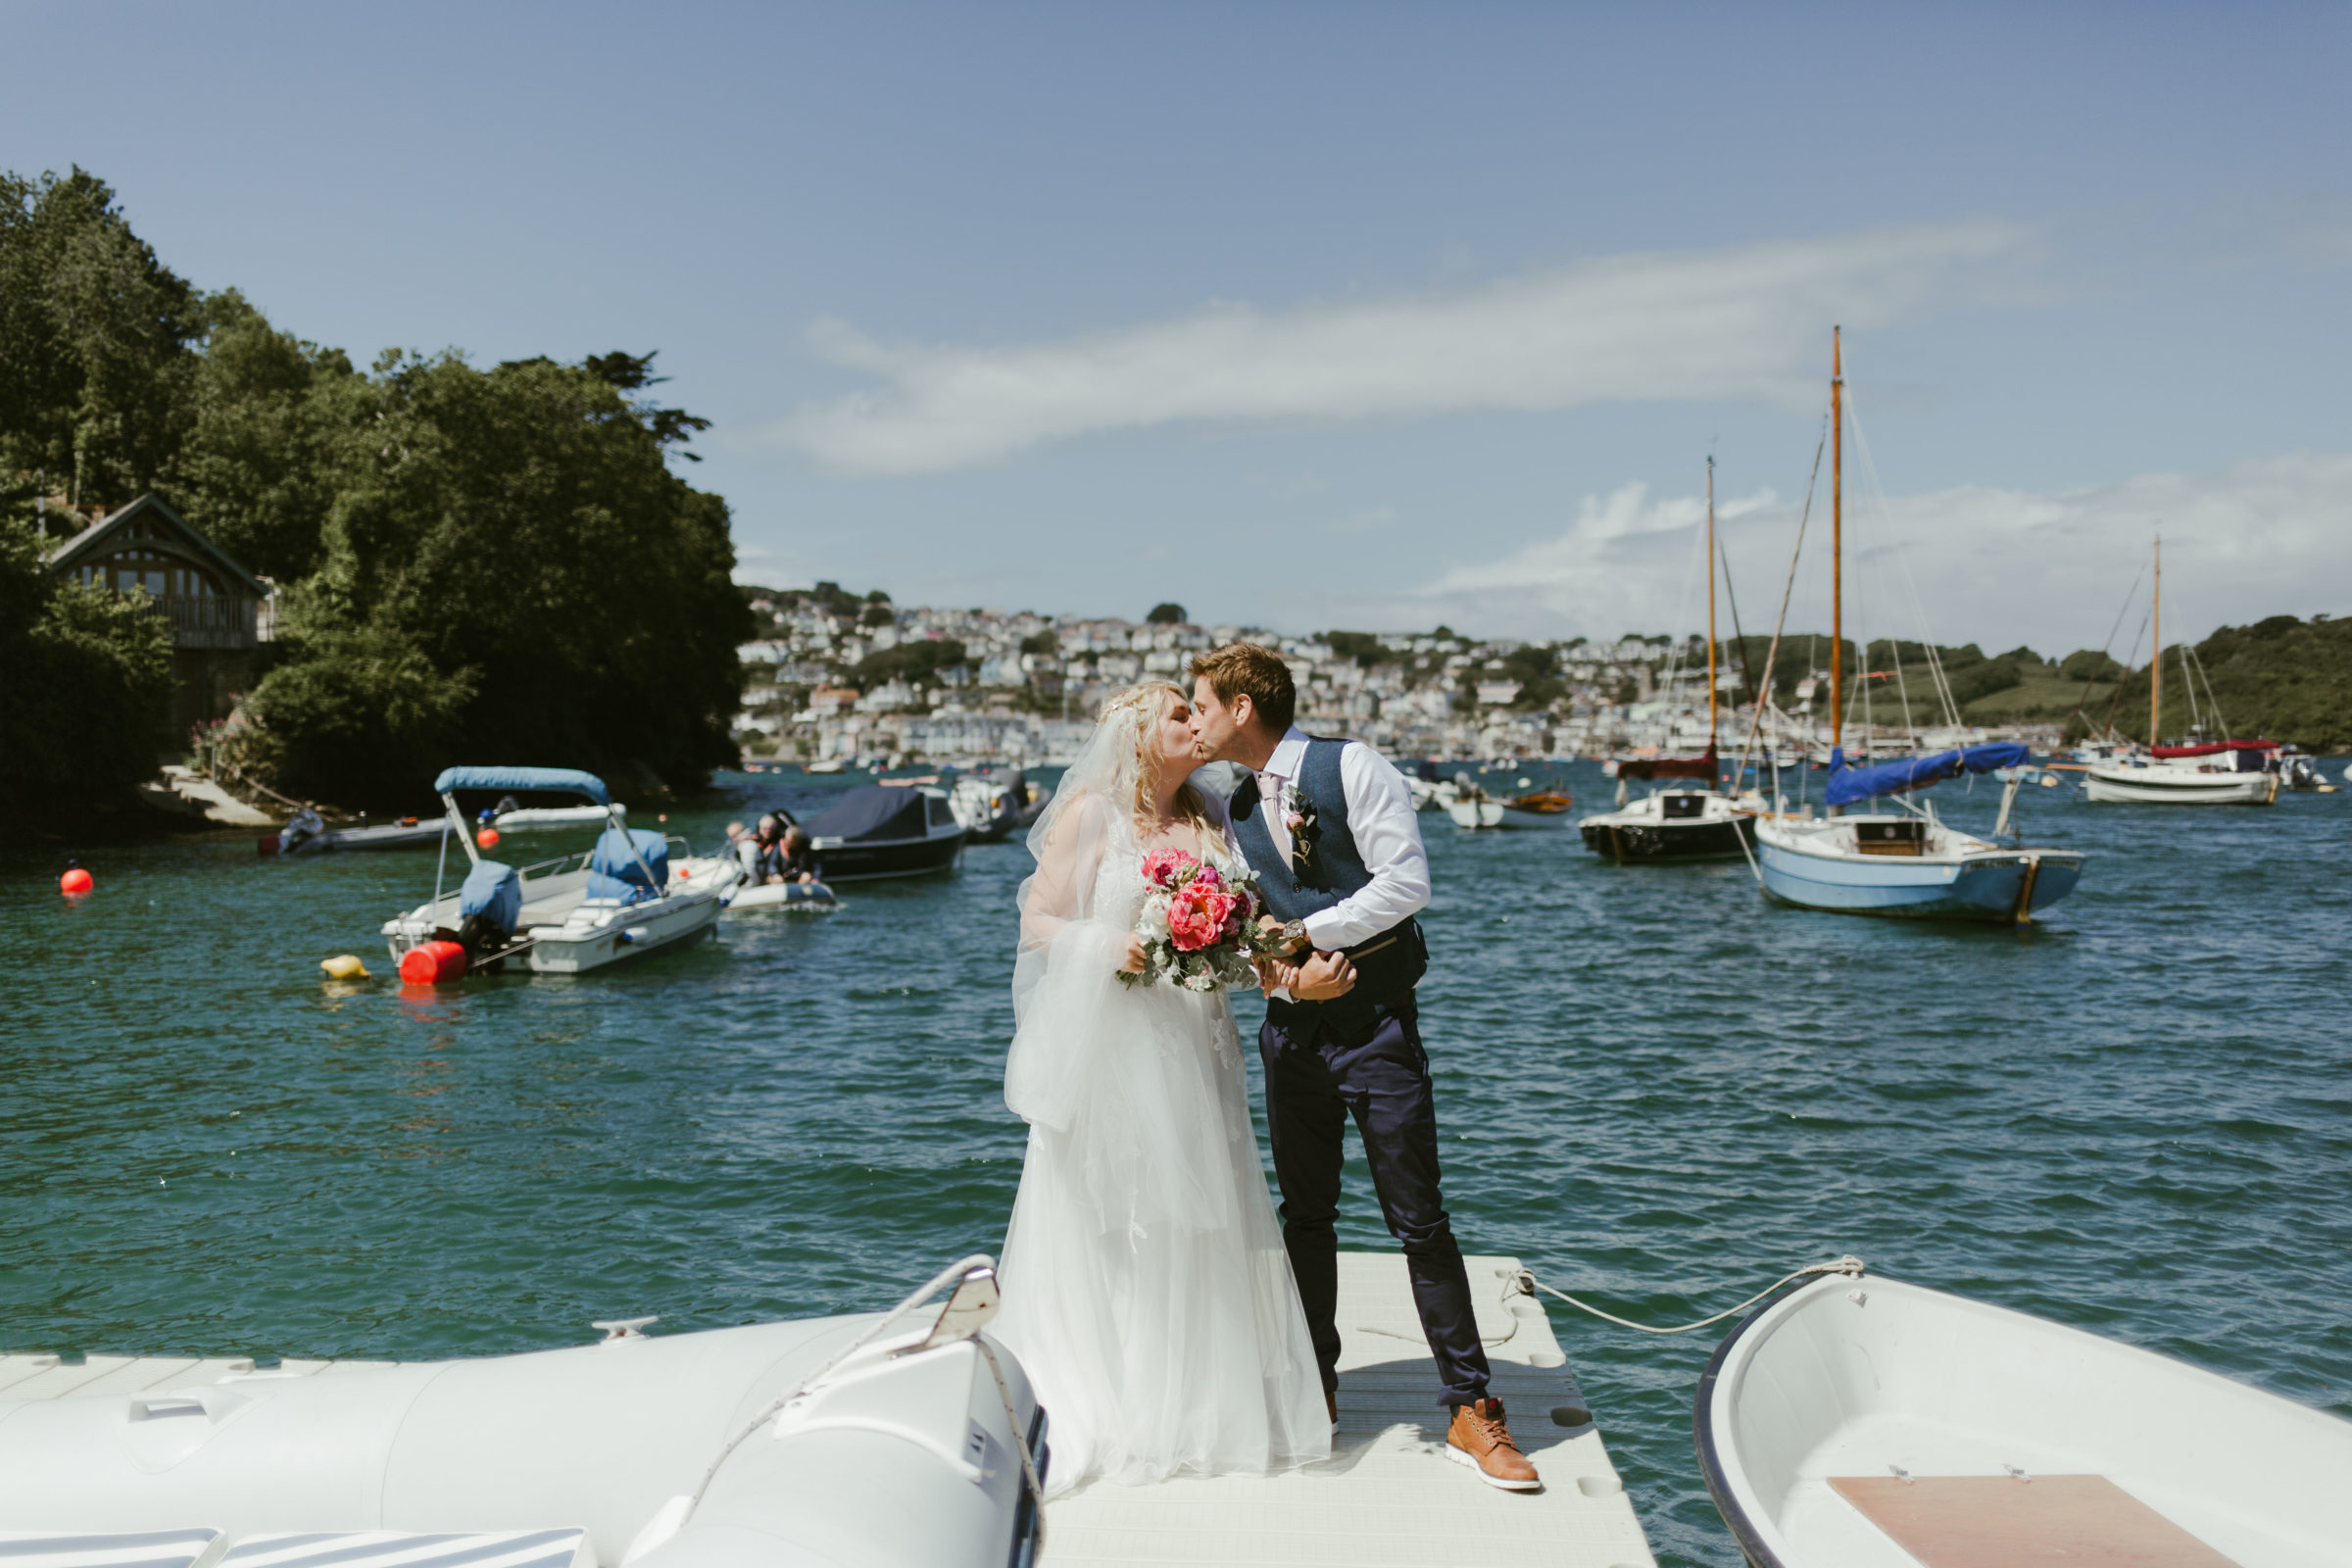 Steph & Ollie – Port Waterhouse Wedding on the Salcombe Coast – June 2019